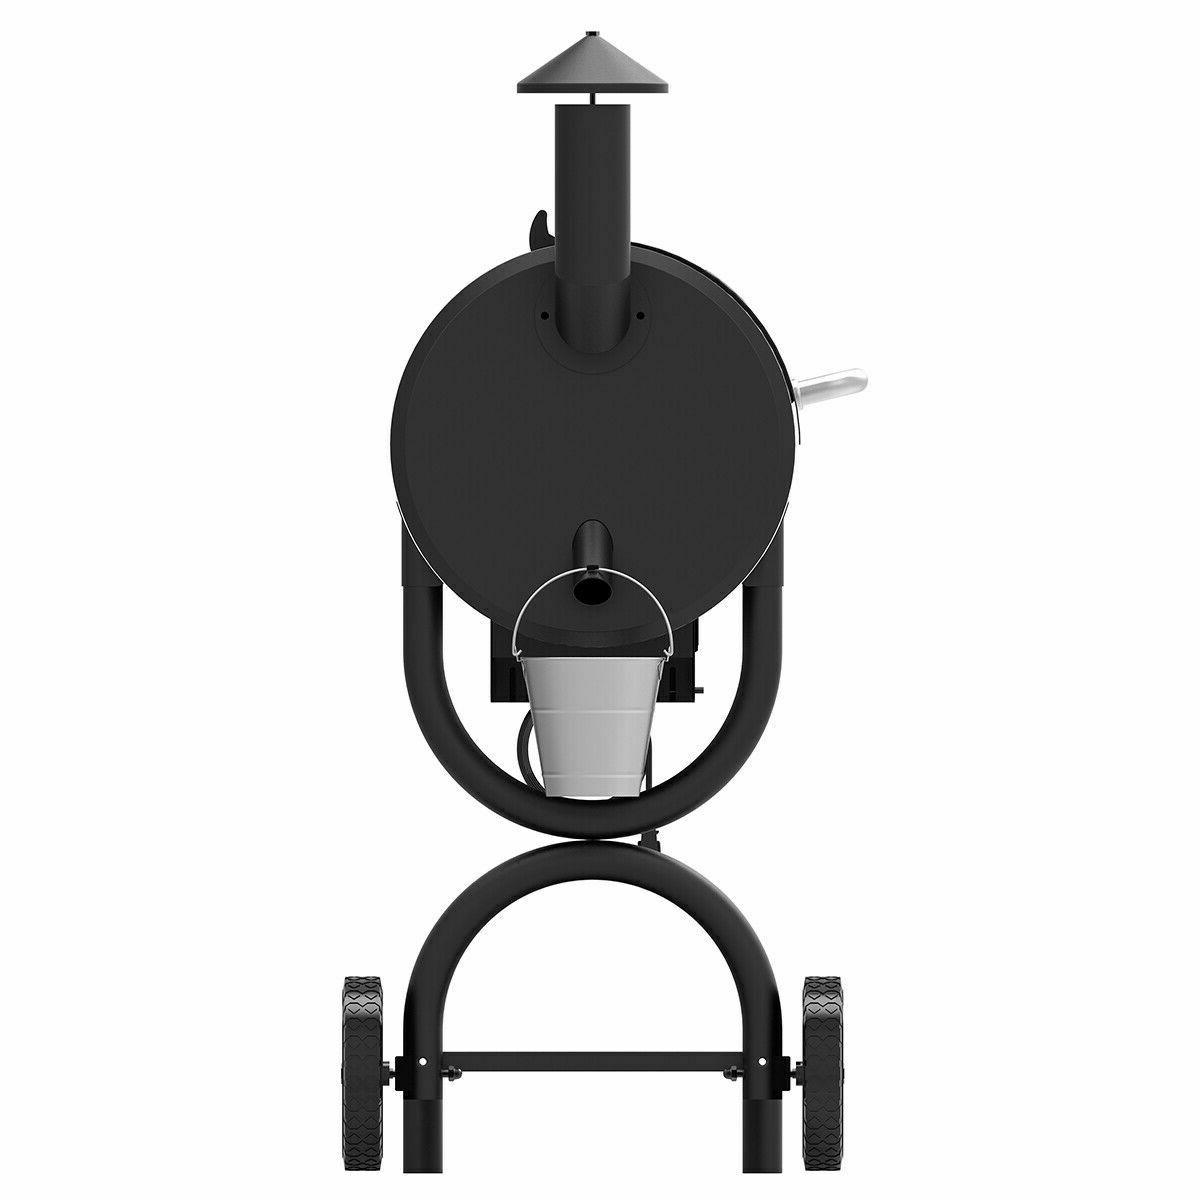 Z Wood Pellet Grill and Smoker Controls